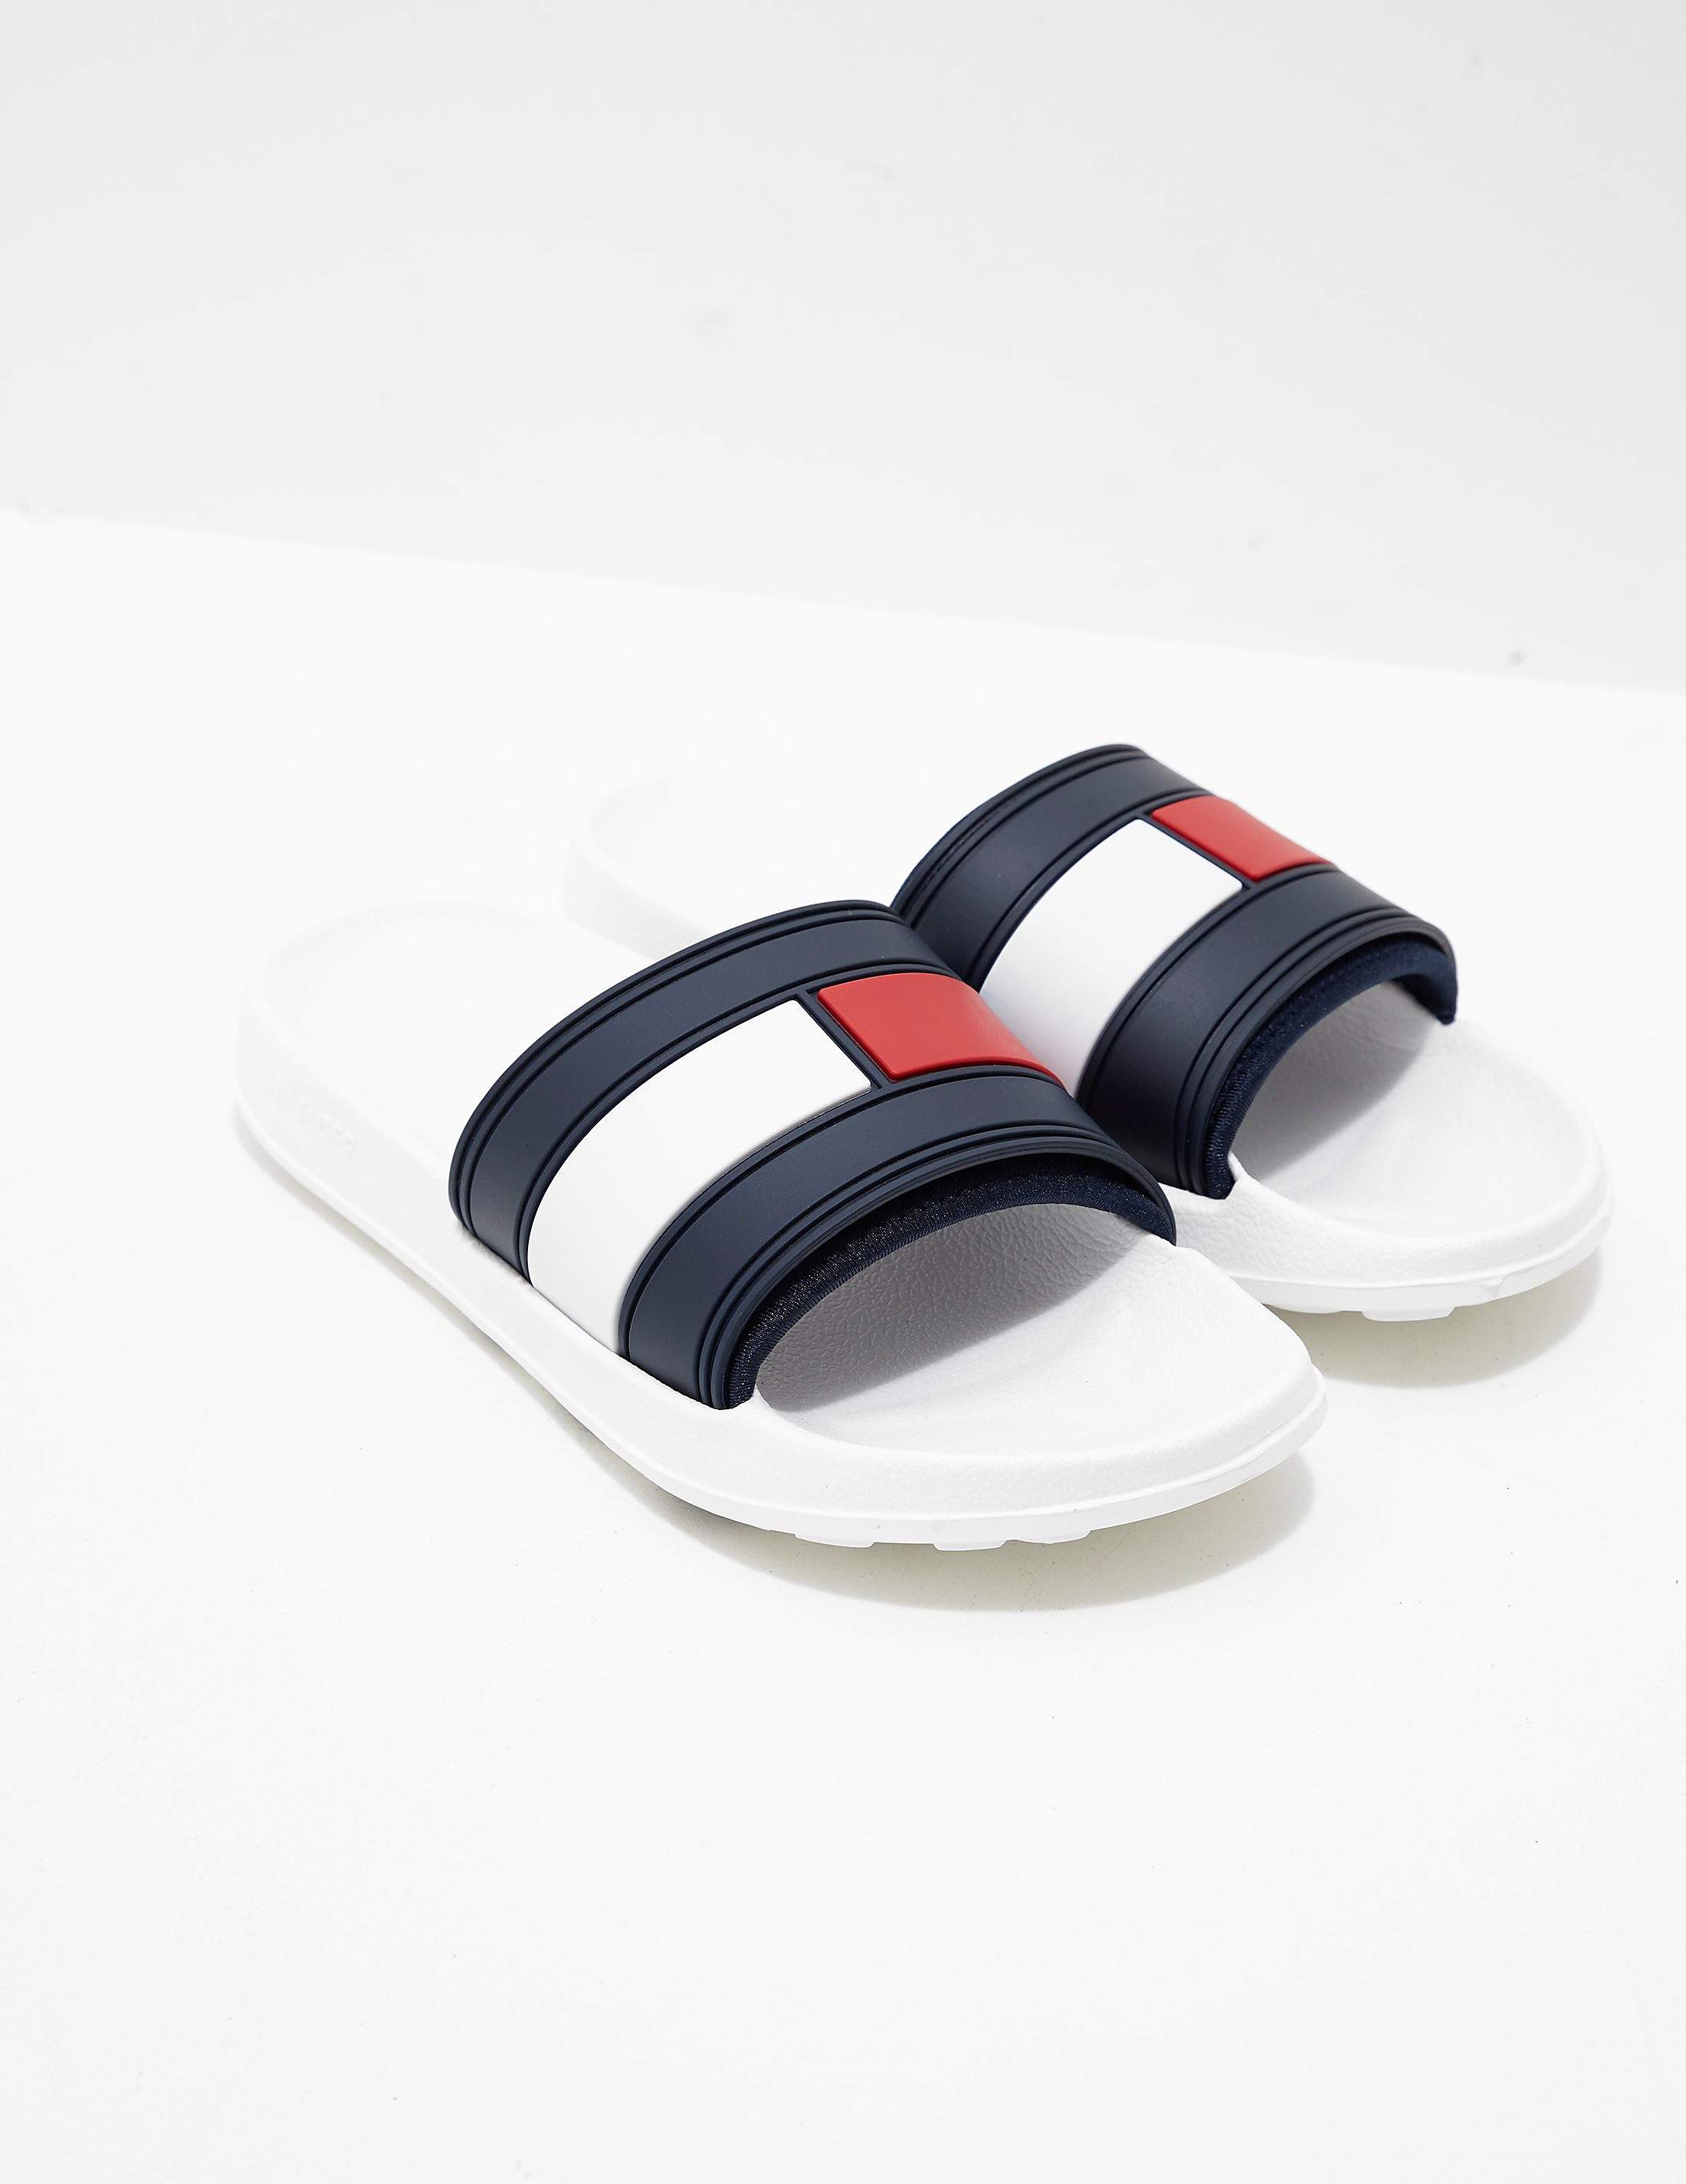 Tommy Hilfiger Slides Women's